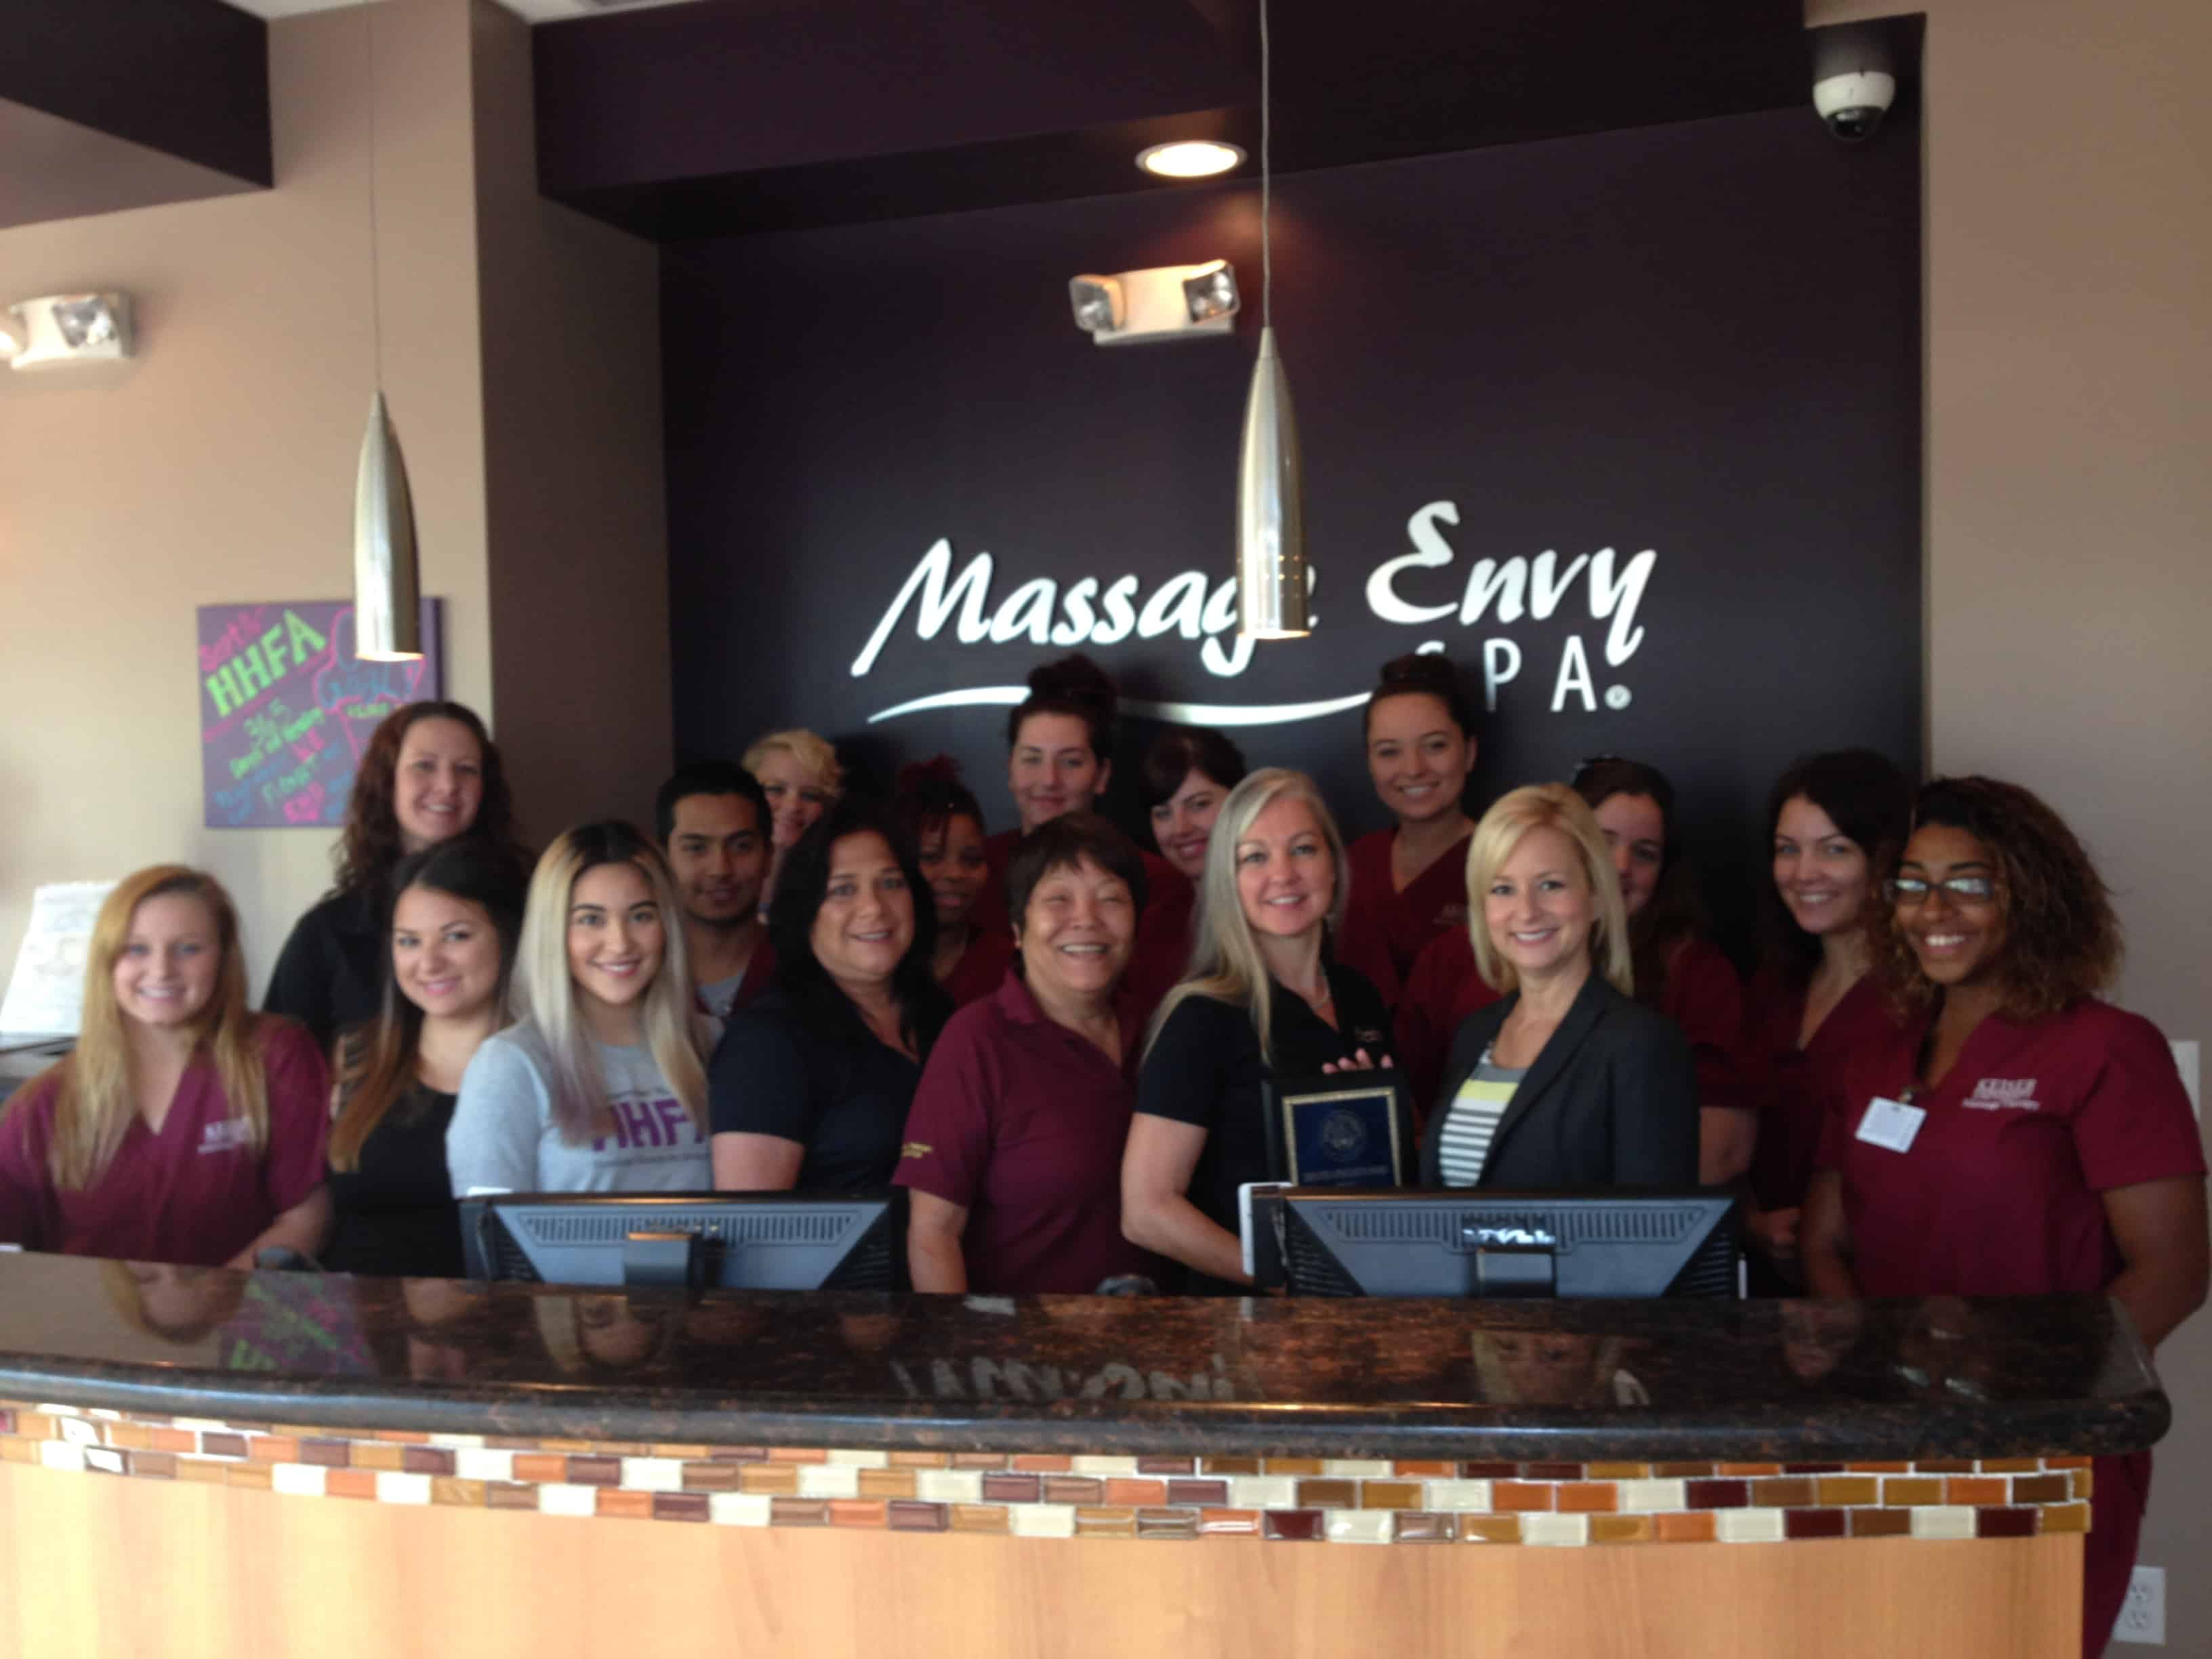 The Port St. Lucie Campus Presents an Employer Award to Massage Envy of Stuart